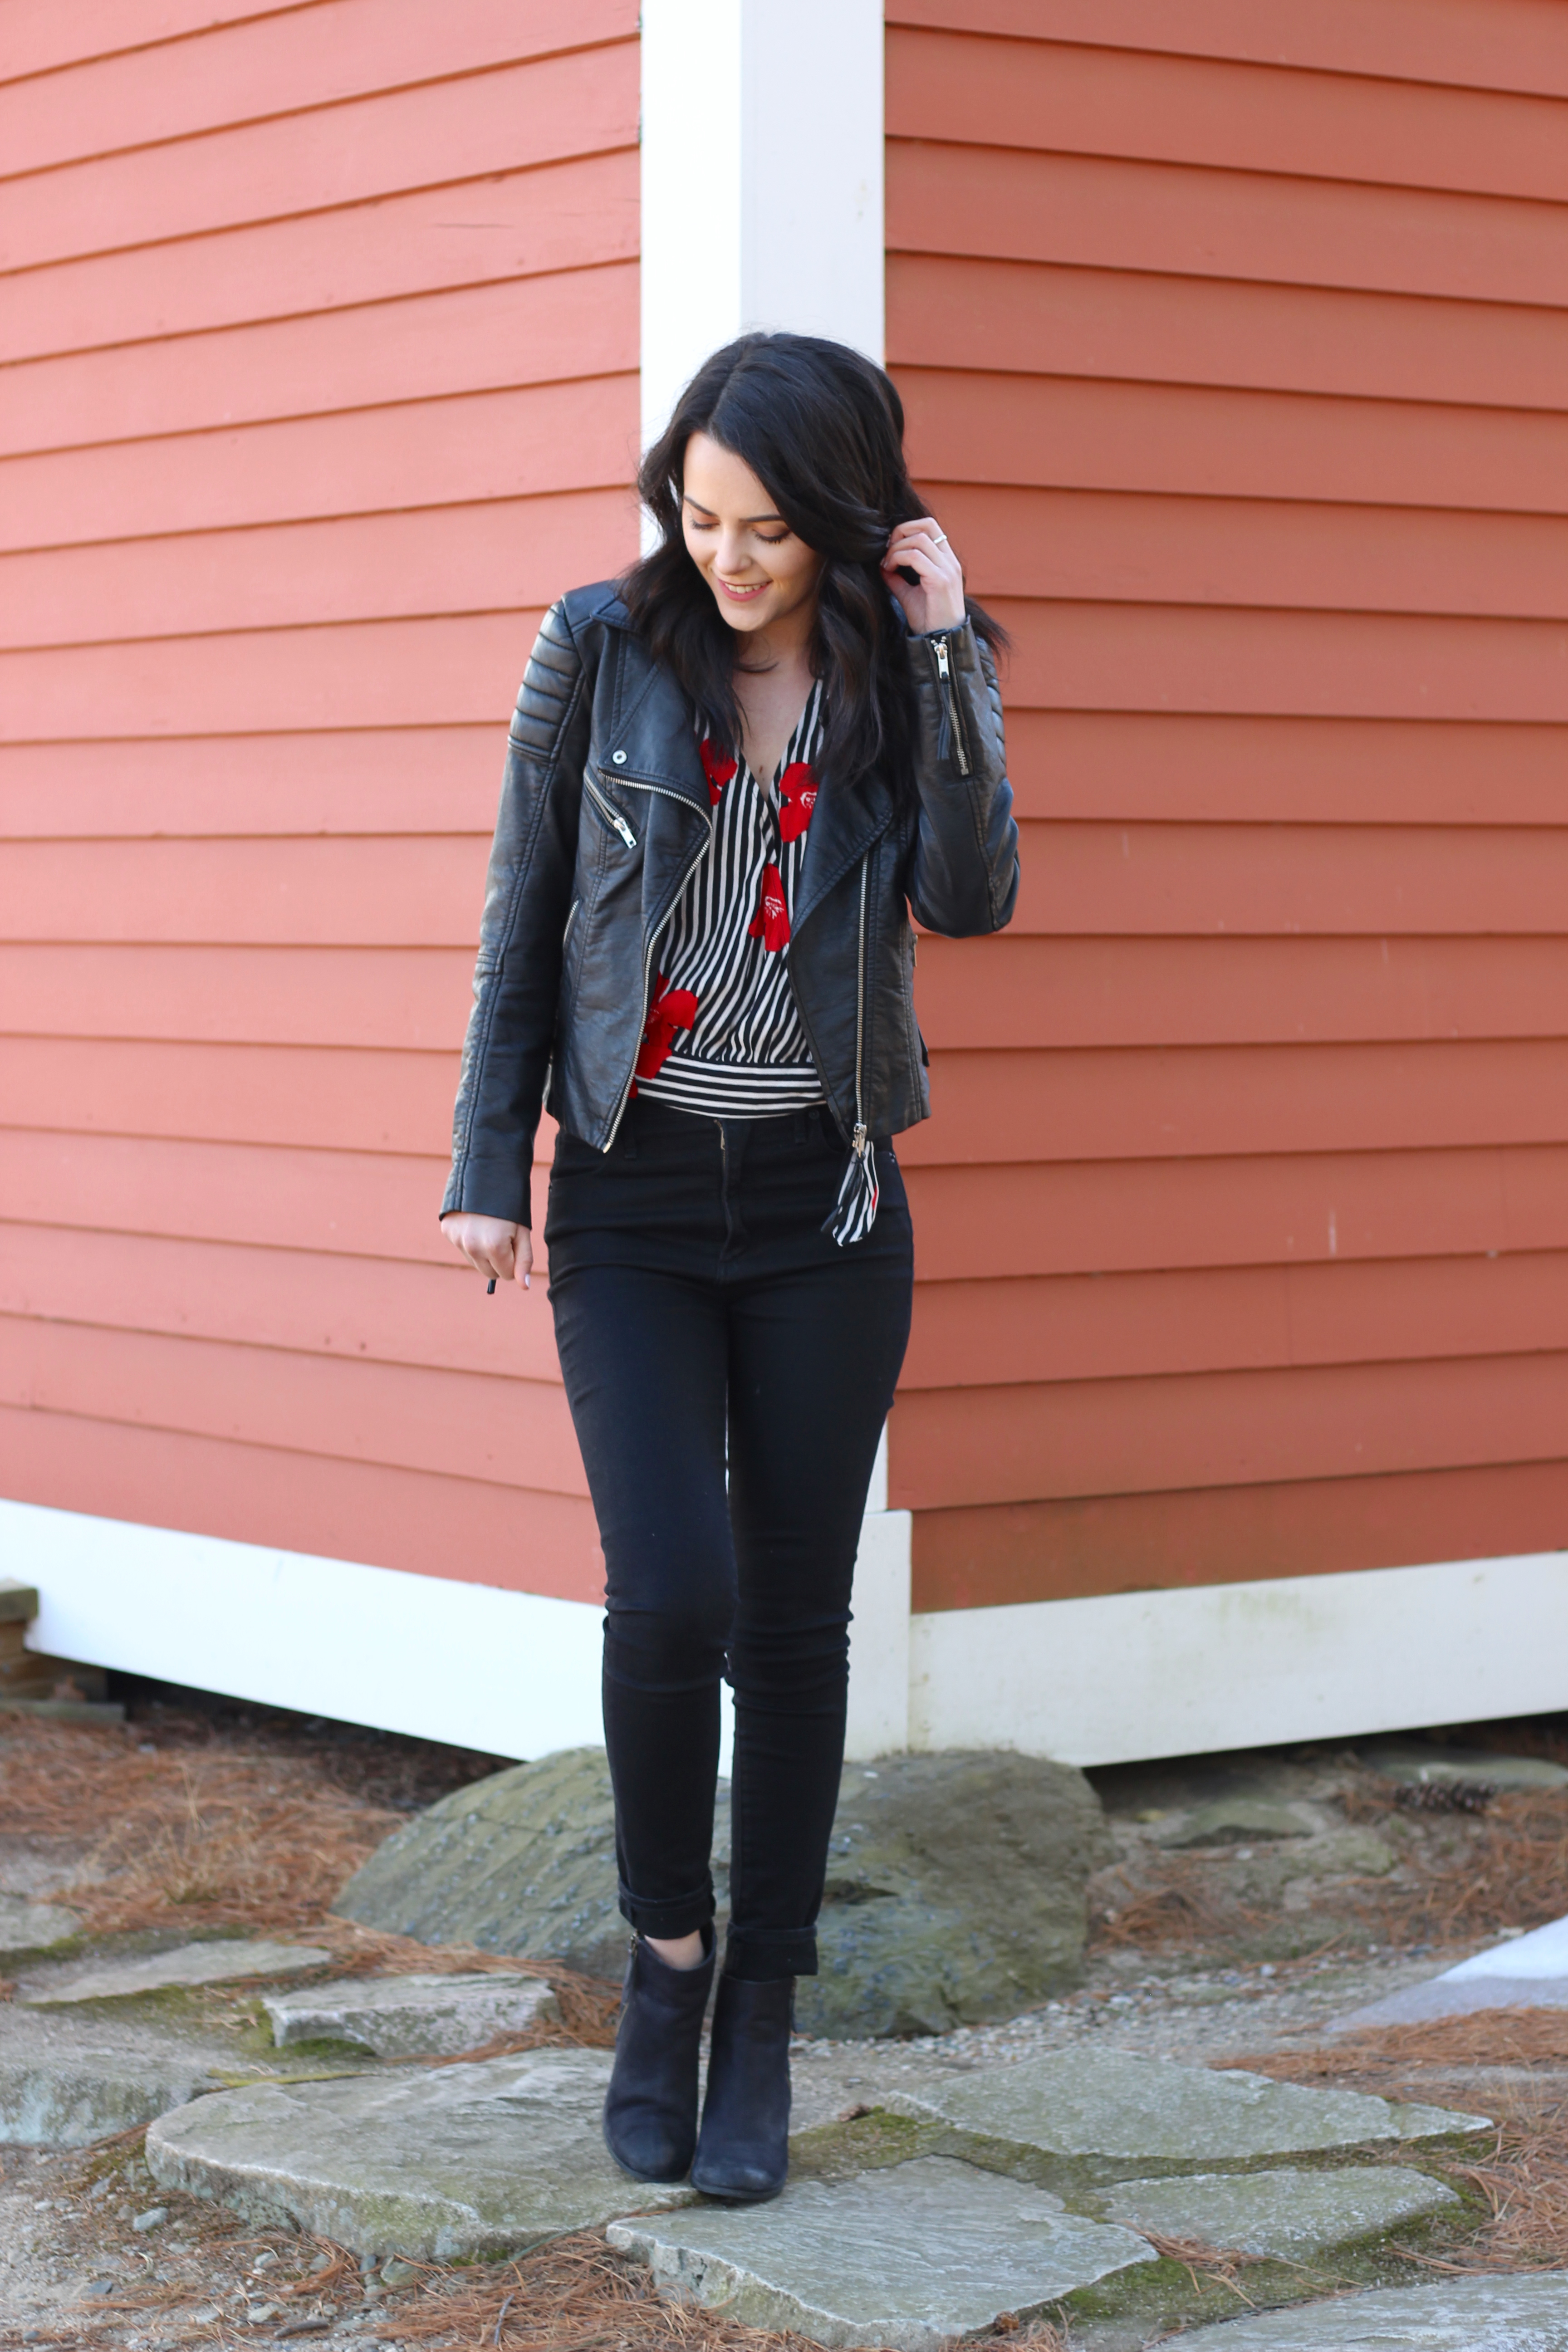 Valentine's Day Outfit + Easy Dessert